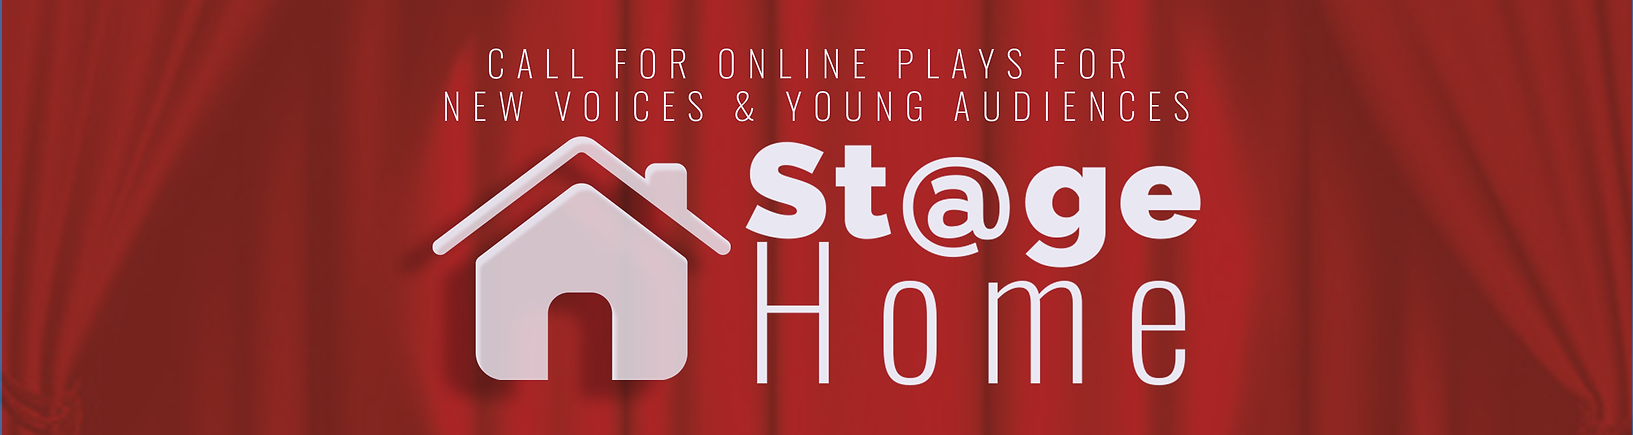 StageatHome-WEBSITE.png